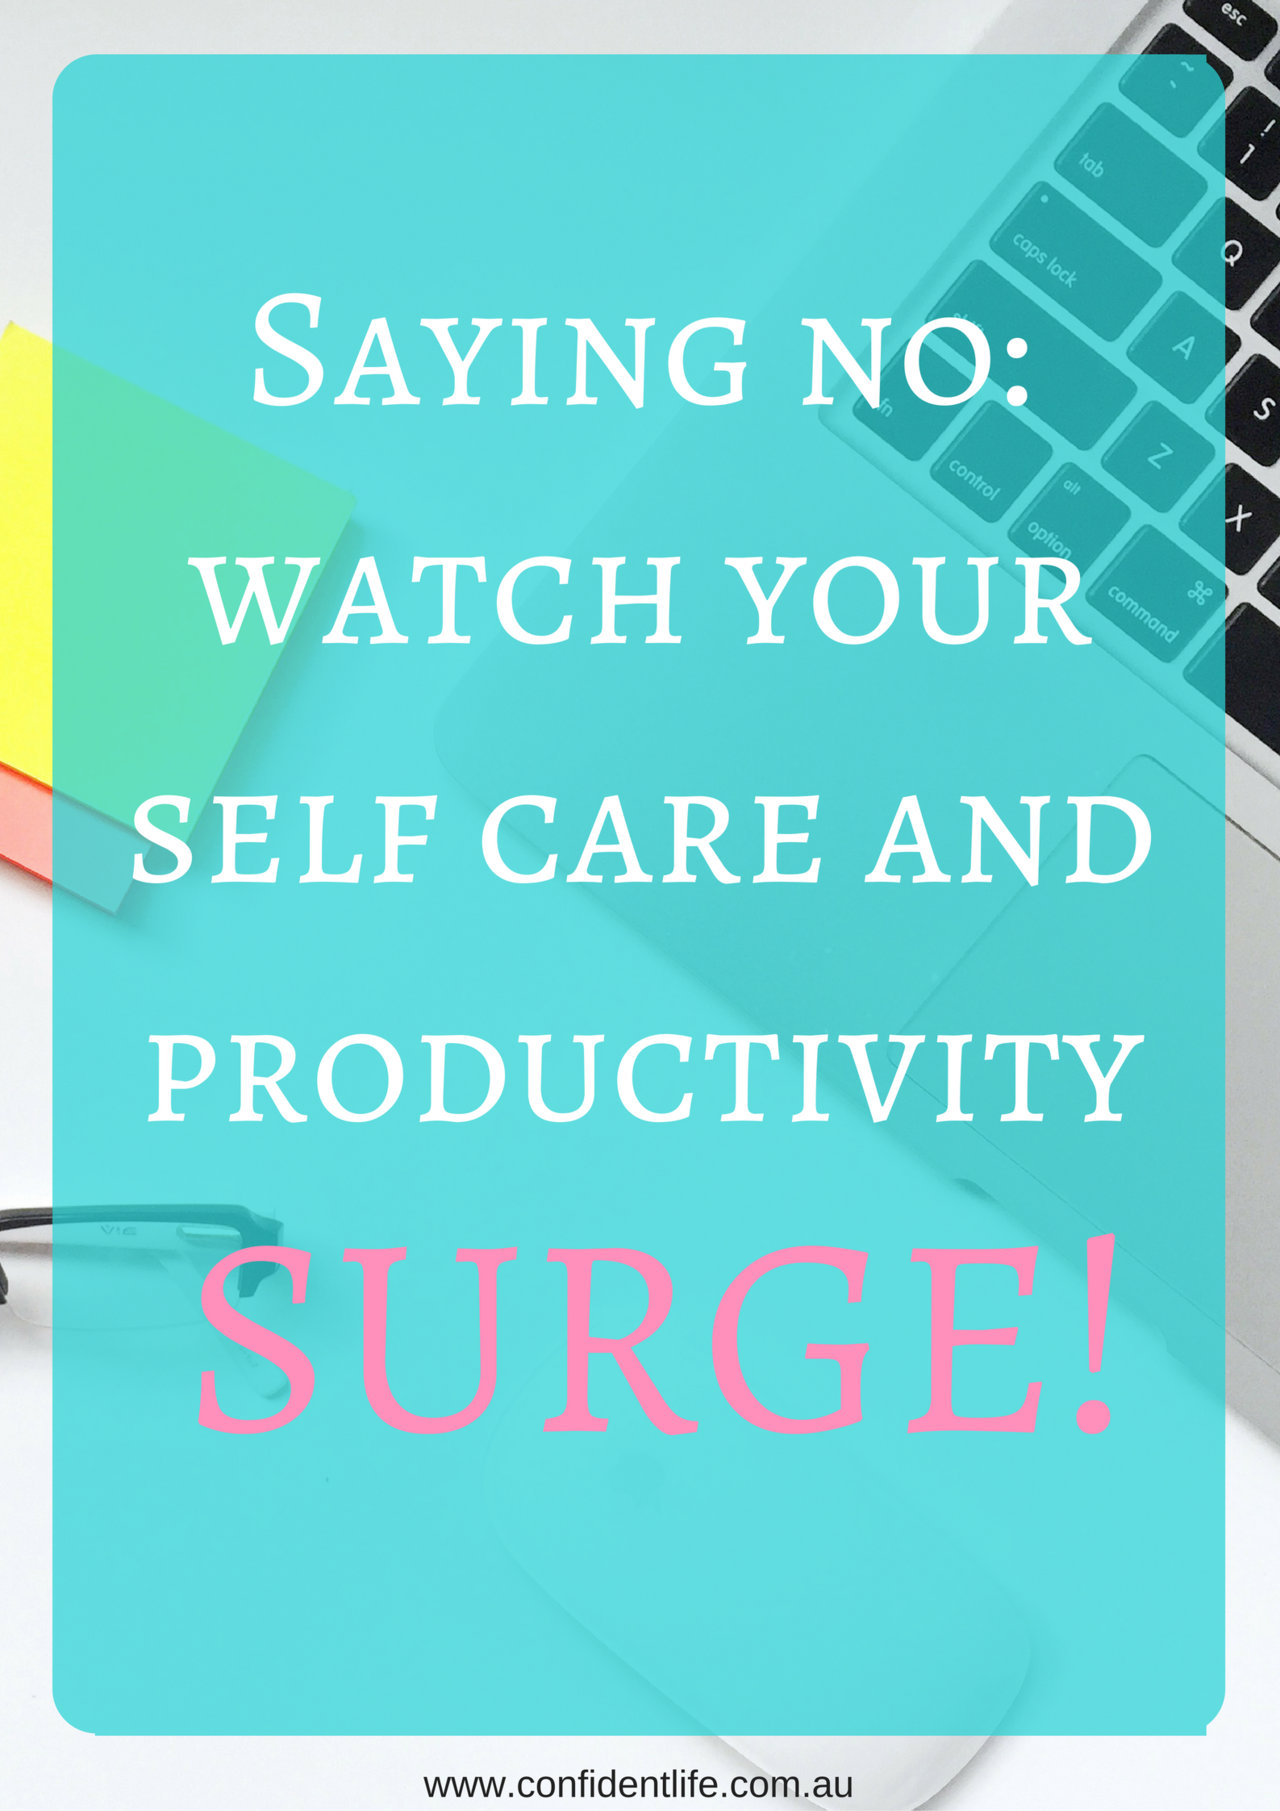 Do you find yourself getting stuck in the 'busy' trap? You need to read the latest post on Saying No and watch your productivity surge! http://confidentlife.com.au/saying-no-watch-self-care-productivity-surge/